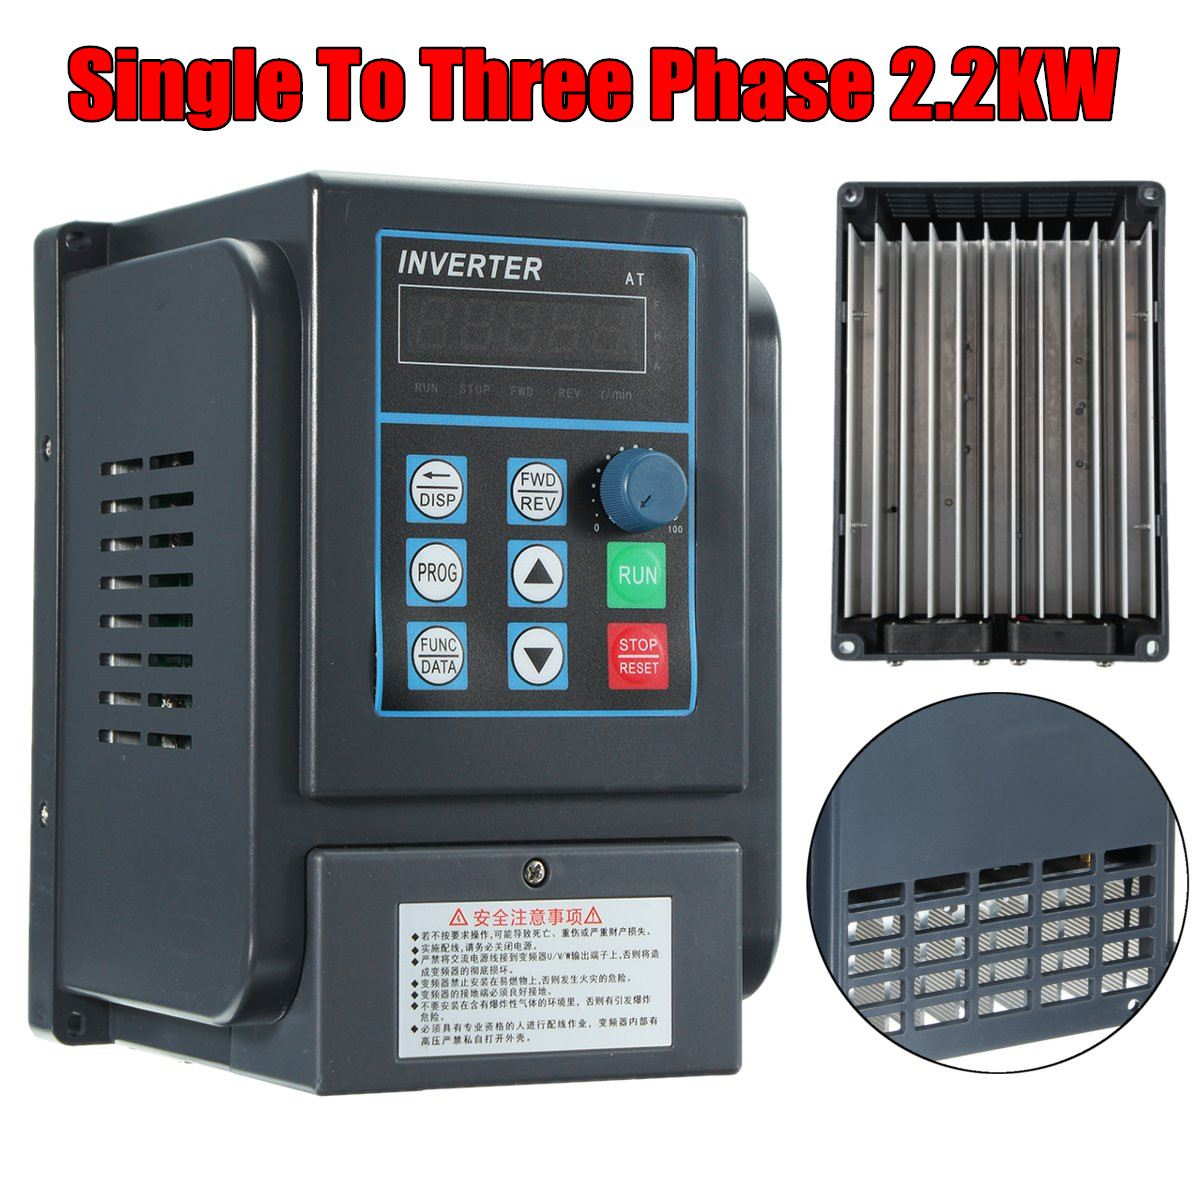 Brand New 380V 2.2KW PWM Control Variable Frequency Drive VFD 1PH Input 3PH Output frequency Drive inverter new atv312hu75n4 vfd inverter input 3ph 380v 17a 7 5kw